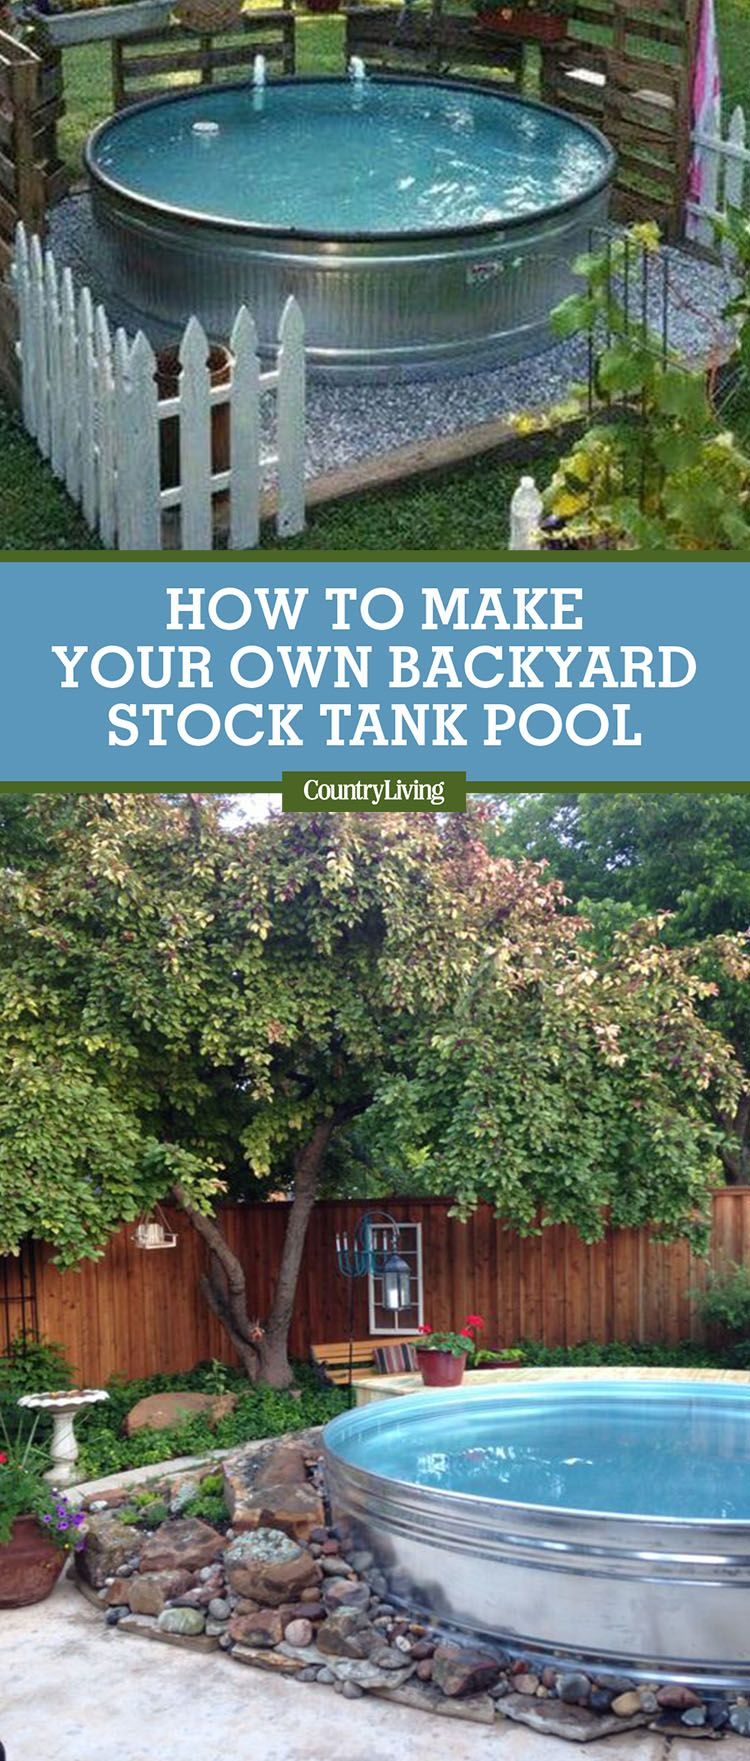 Stock Tank Swimming Pool Ideas How To Make A Pool From A